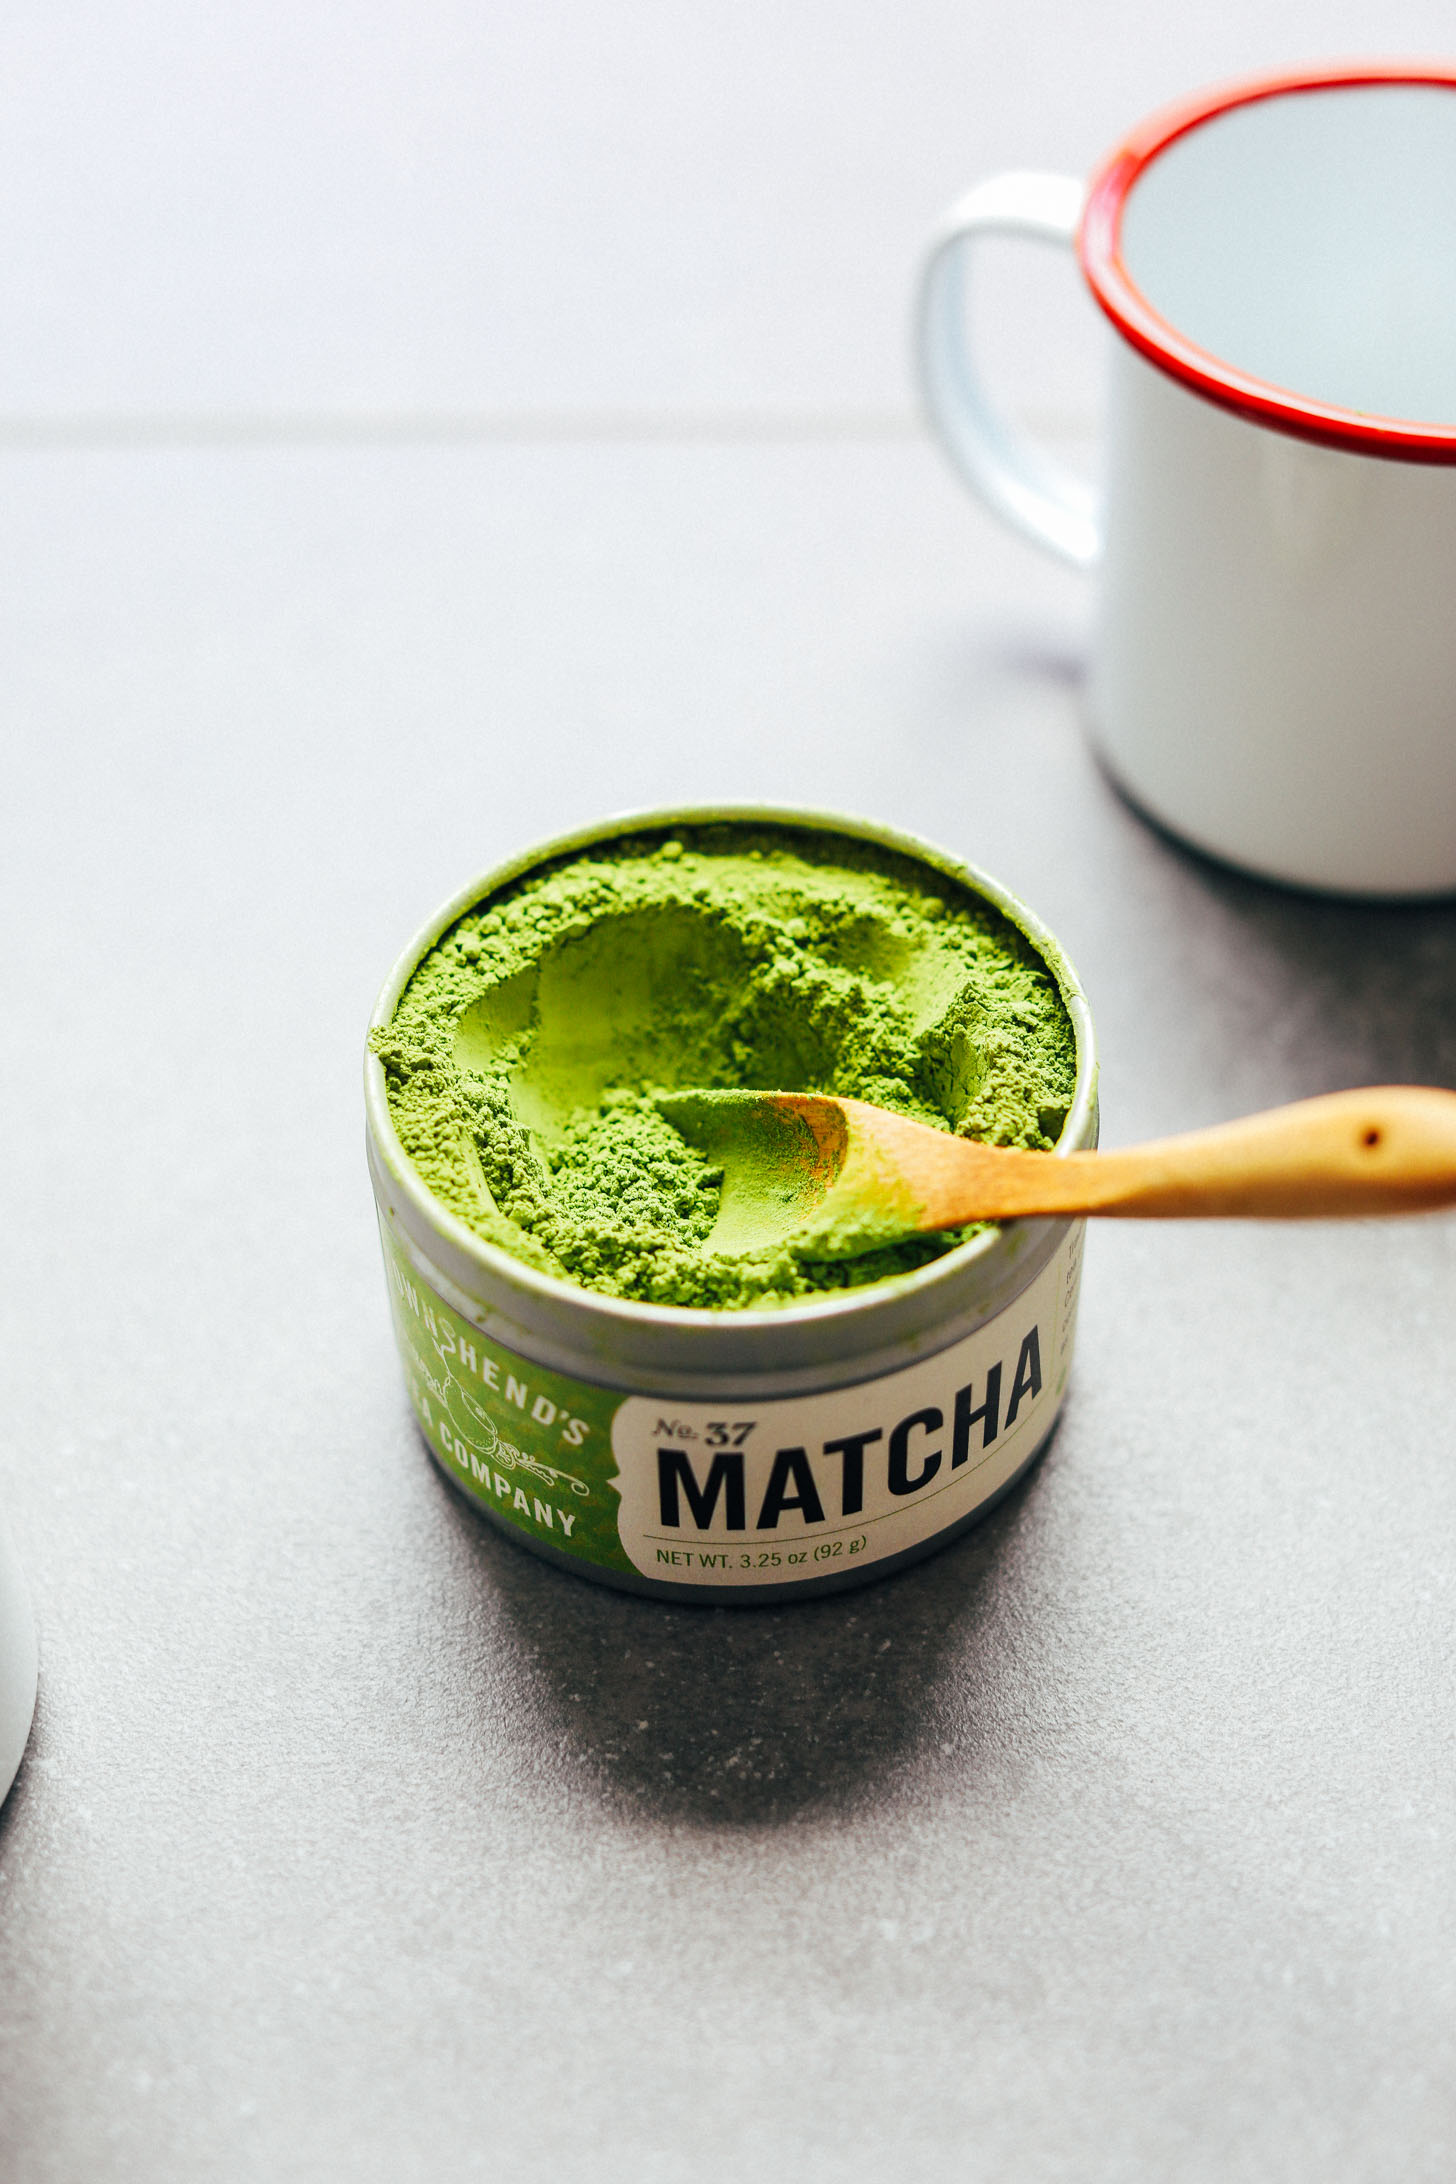 Using a small wooden spoon to grab a scoop of matcha powder for making the Best Matcha Latte